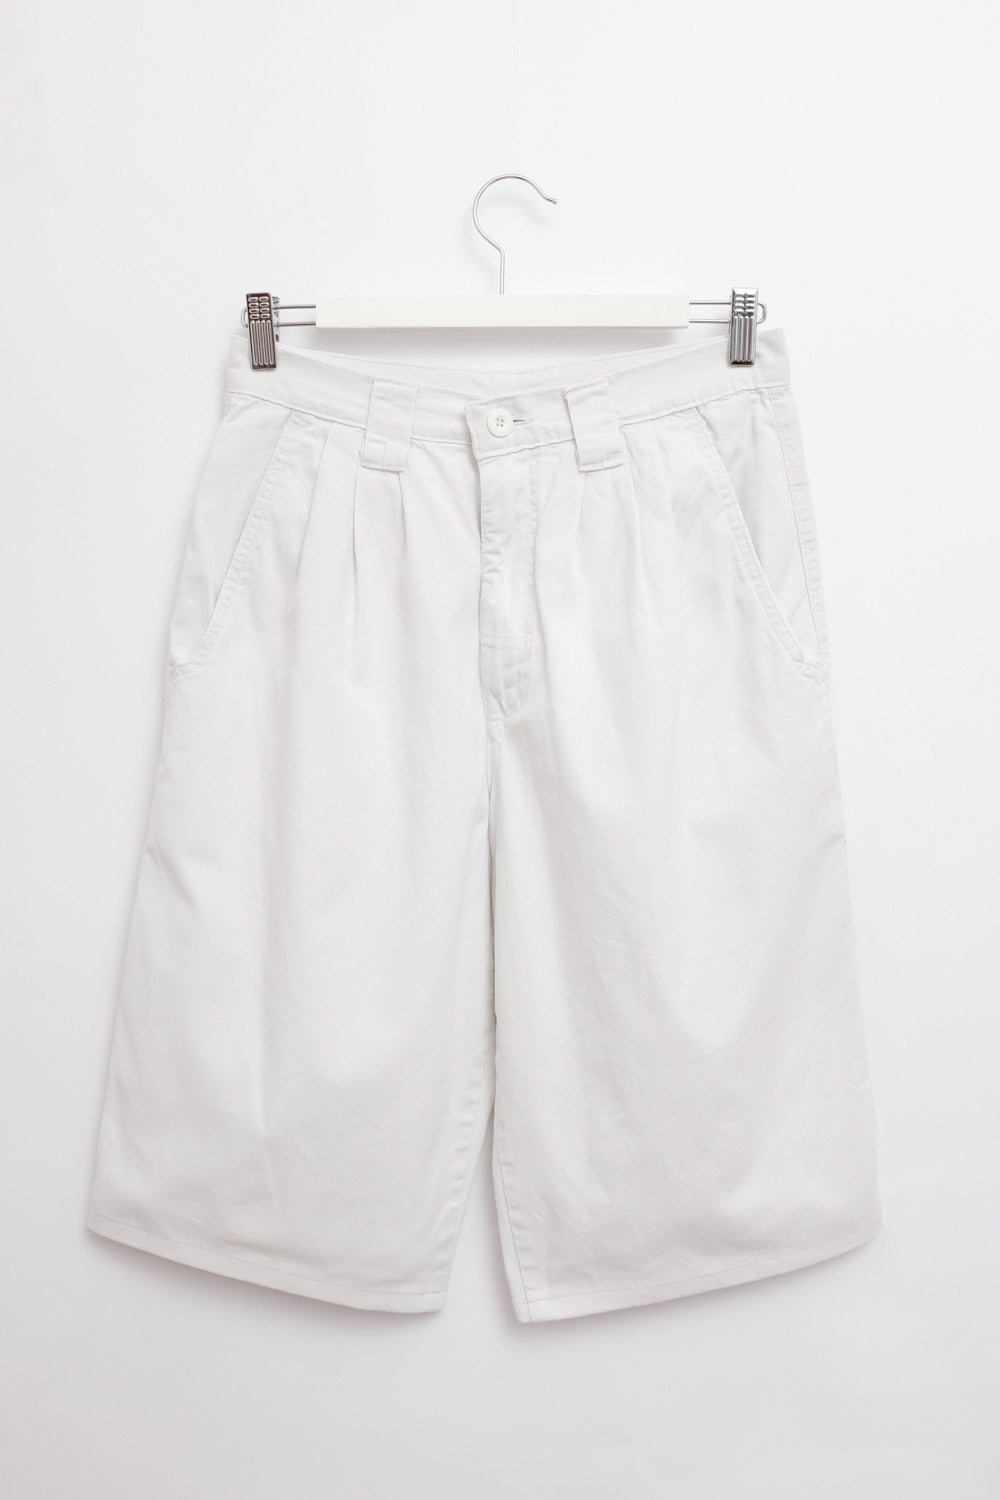 0016_PLEATED COTTON VINTAGE SHORTS